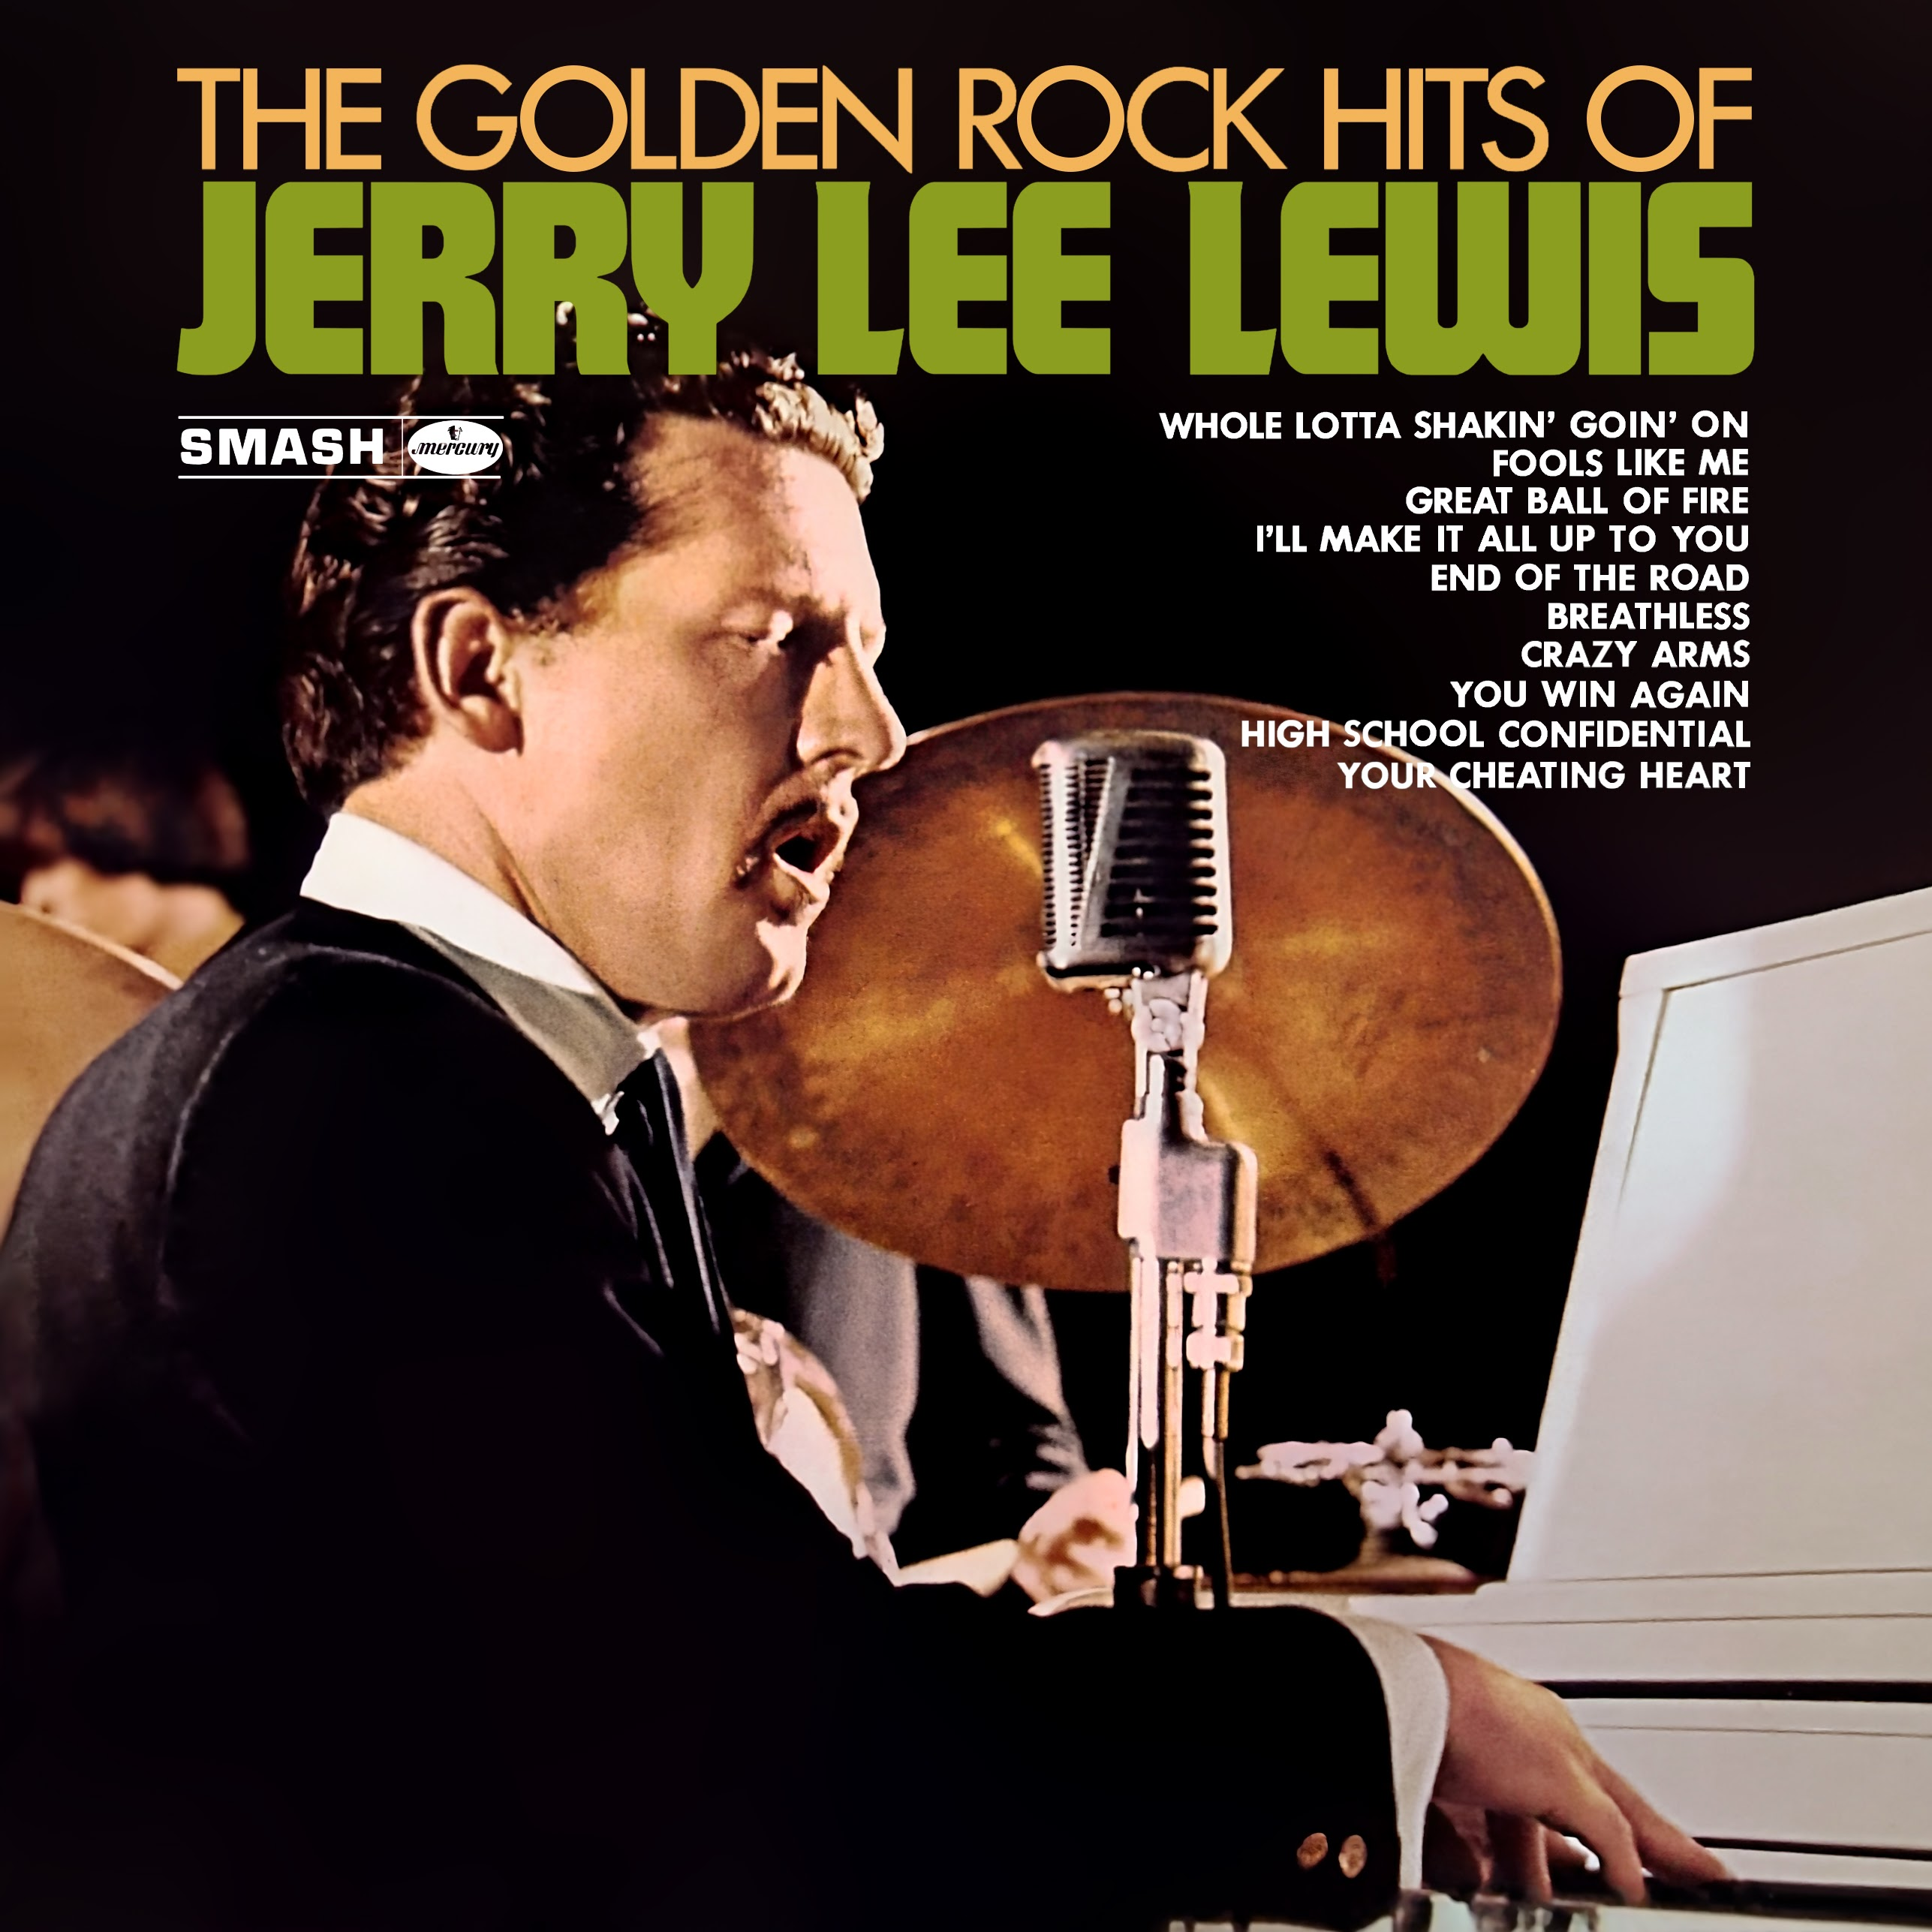 Album Artist: Jerry Lee Lewis / Album Title: The Golden Rock Hits of Jerry Lee Lewis